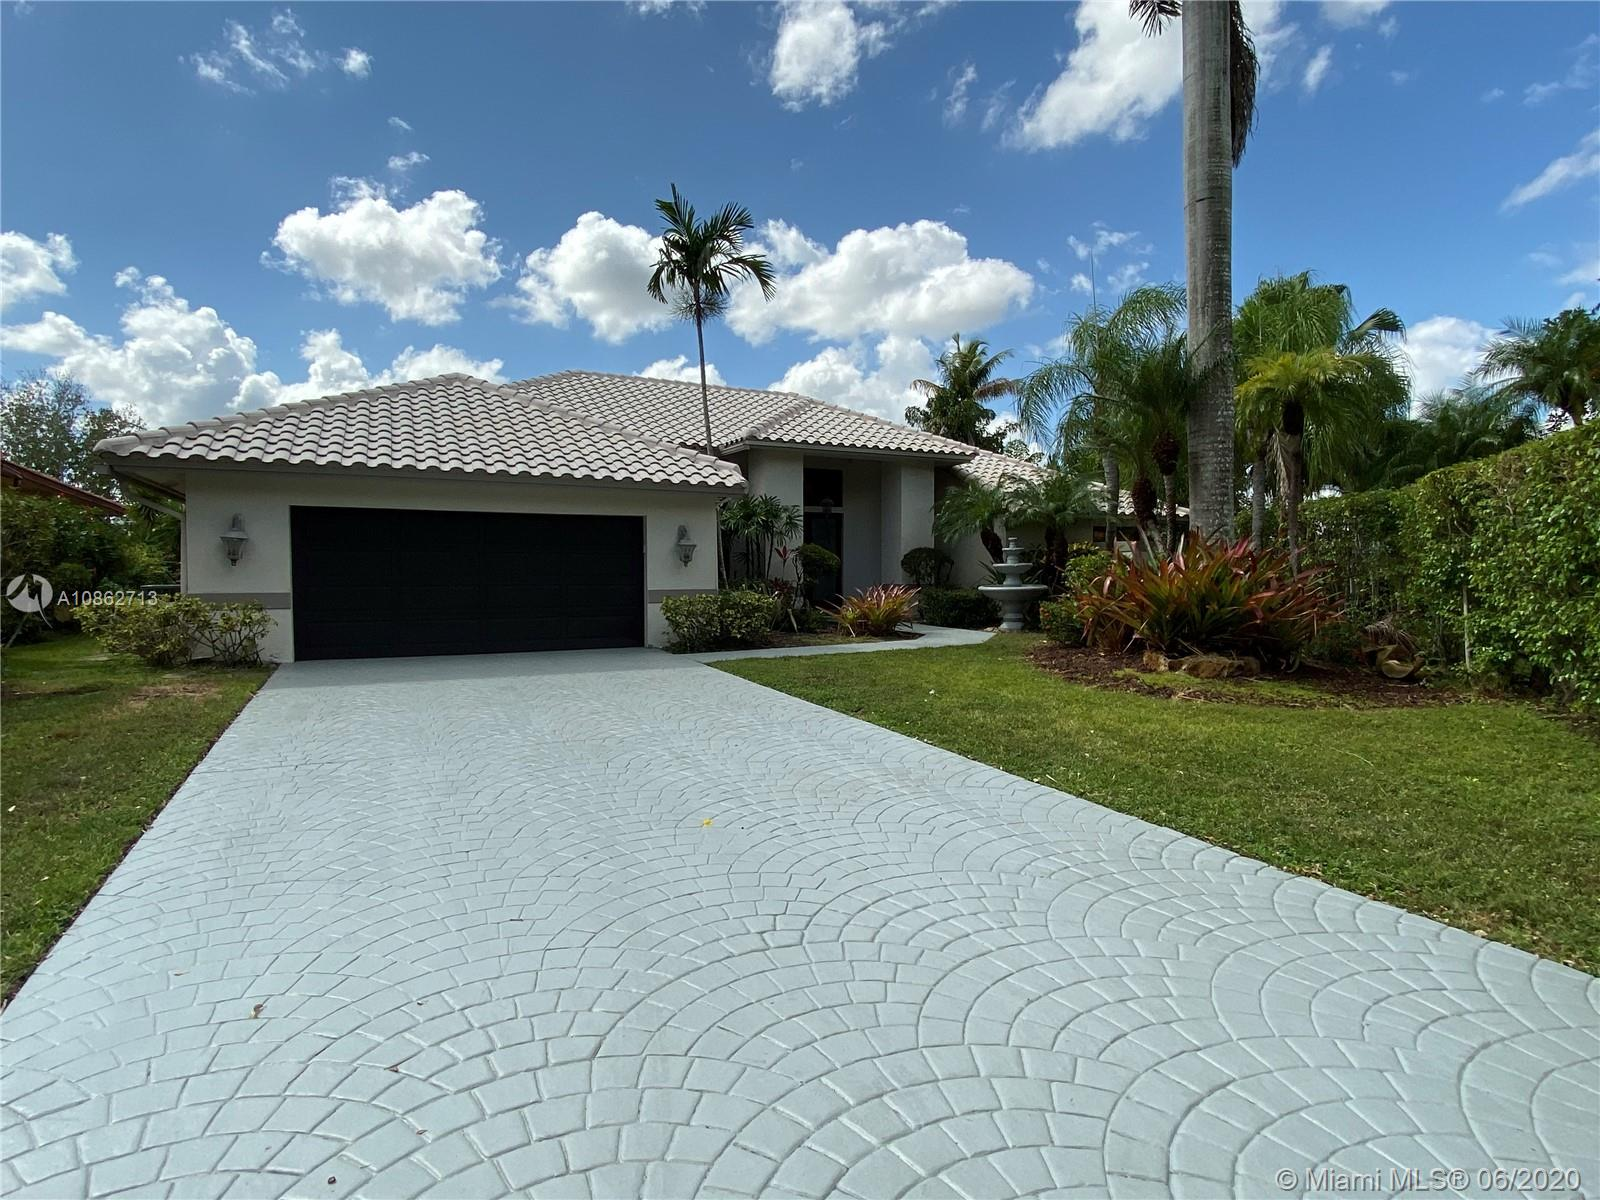 One story house with Pool at Tequesta sitting on Cul de Sac lot. New floors throughout. Freshly Painted. Priced to sell.